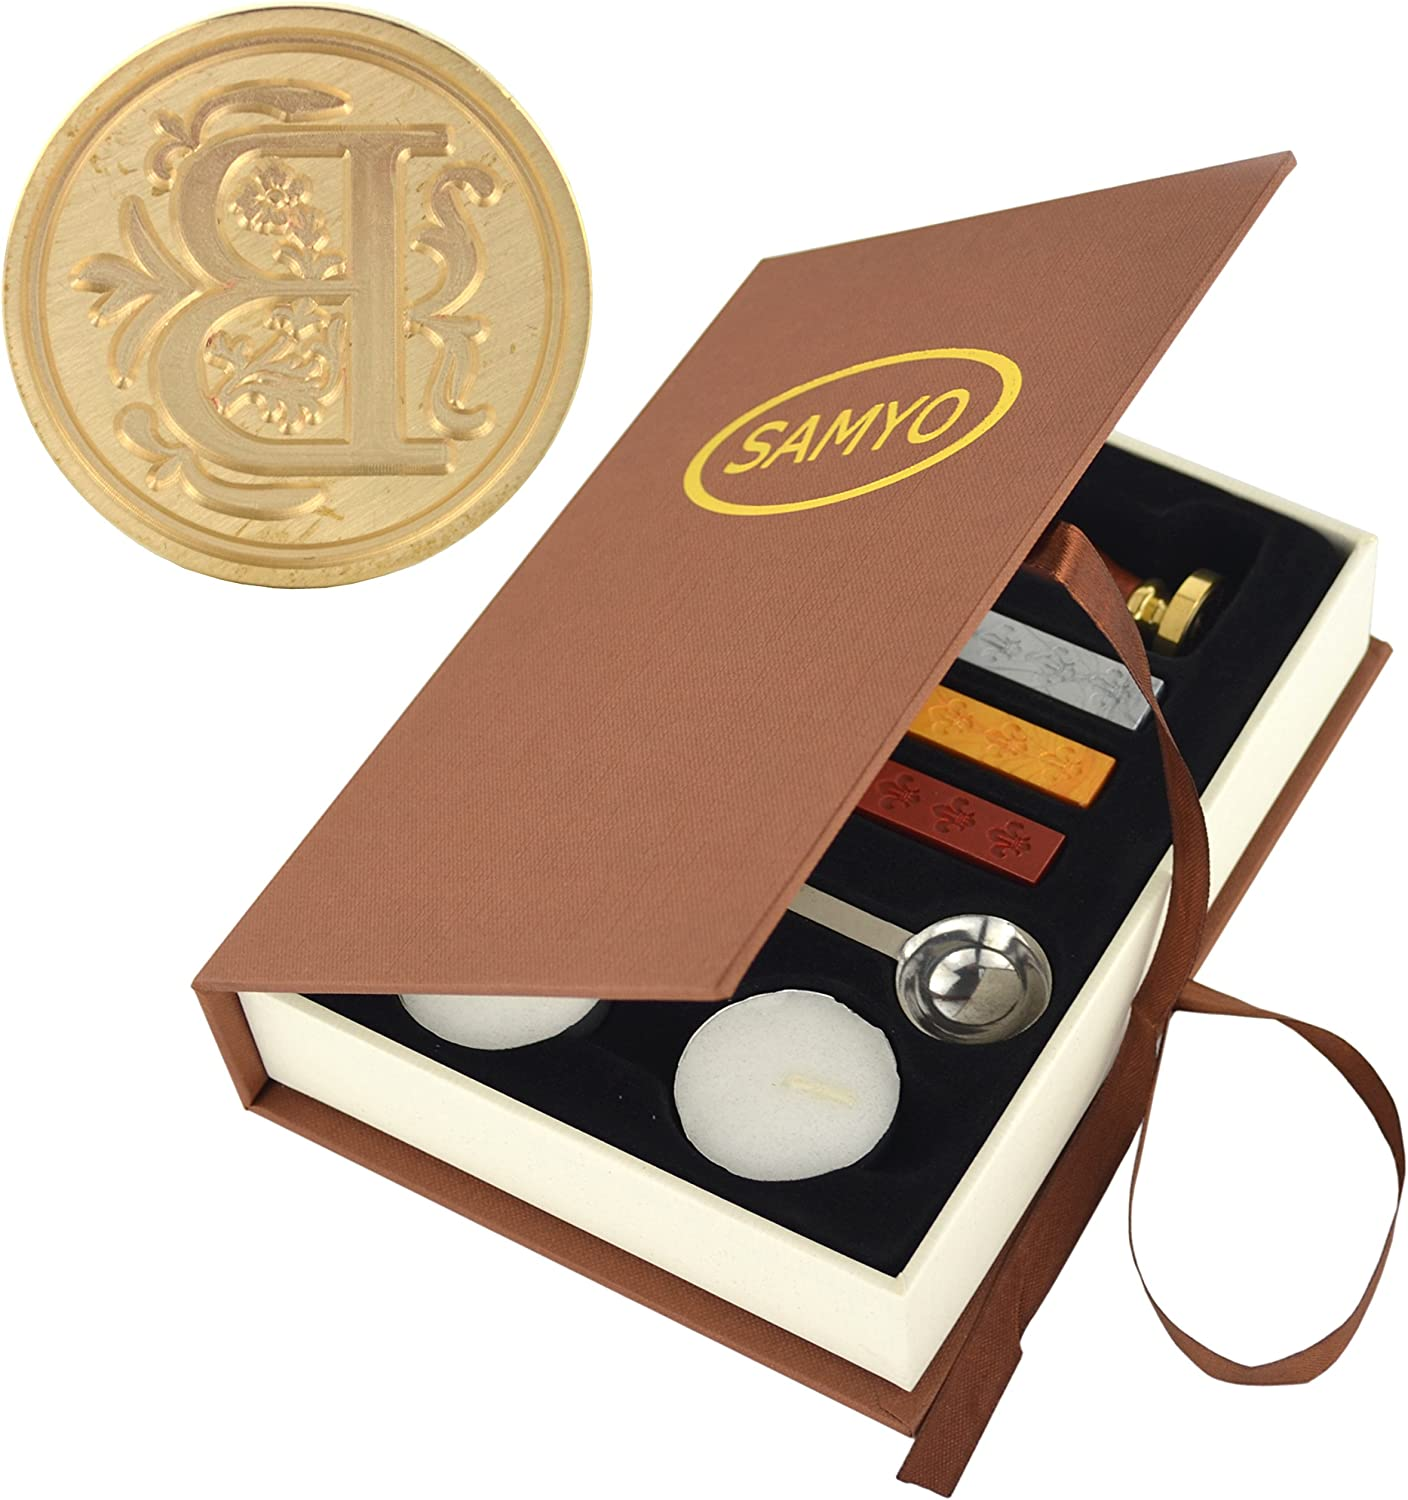 Prosperveil Wax Seal Stamp Kit Vintage Merry Christmas Tree Snowflake Sealing Wax Stamp Beads Spoon Candles Gift Box Set for Christmas Party Invitation Card DIY Craft Letter Envelope